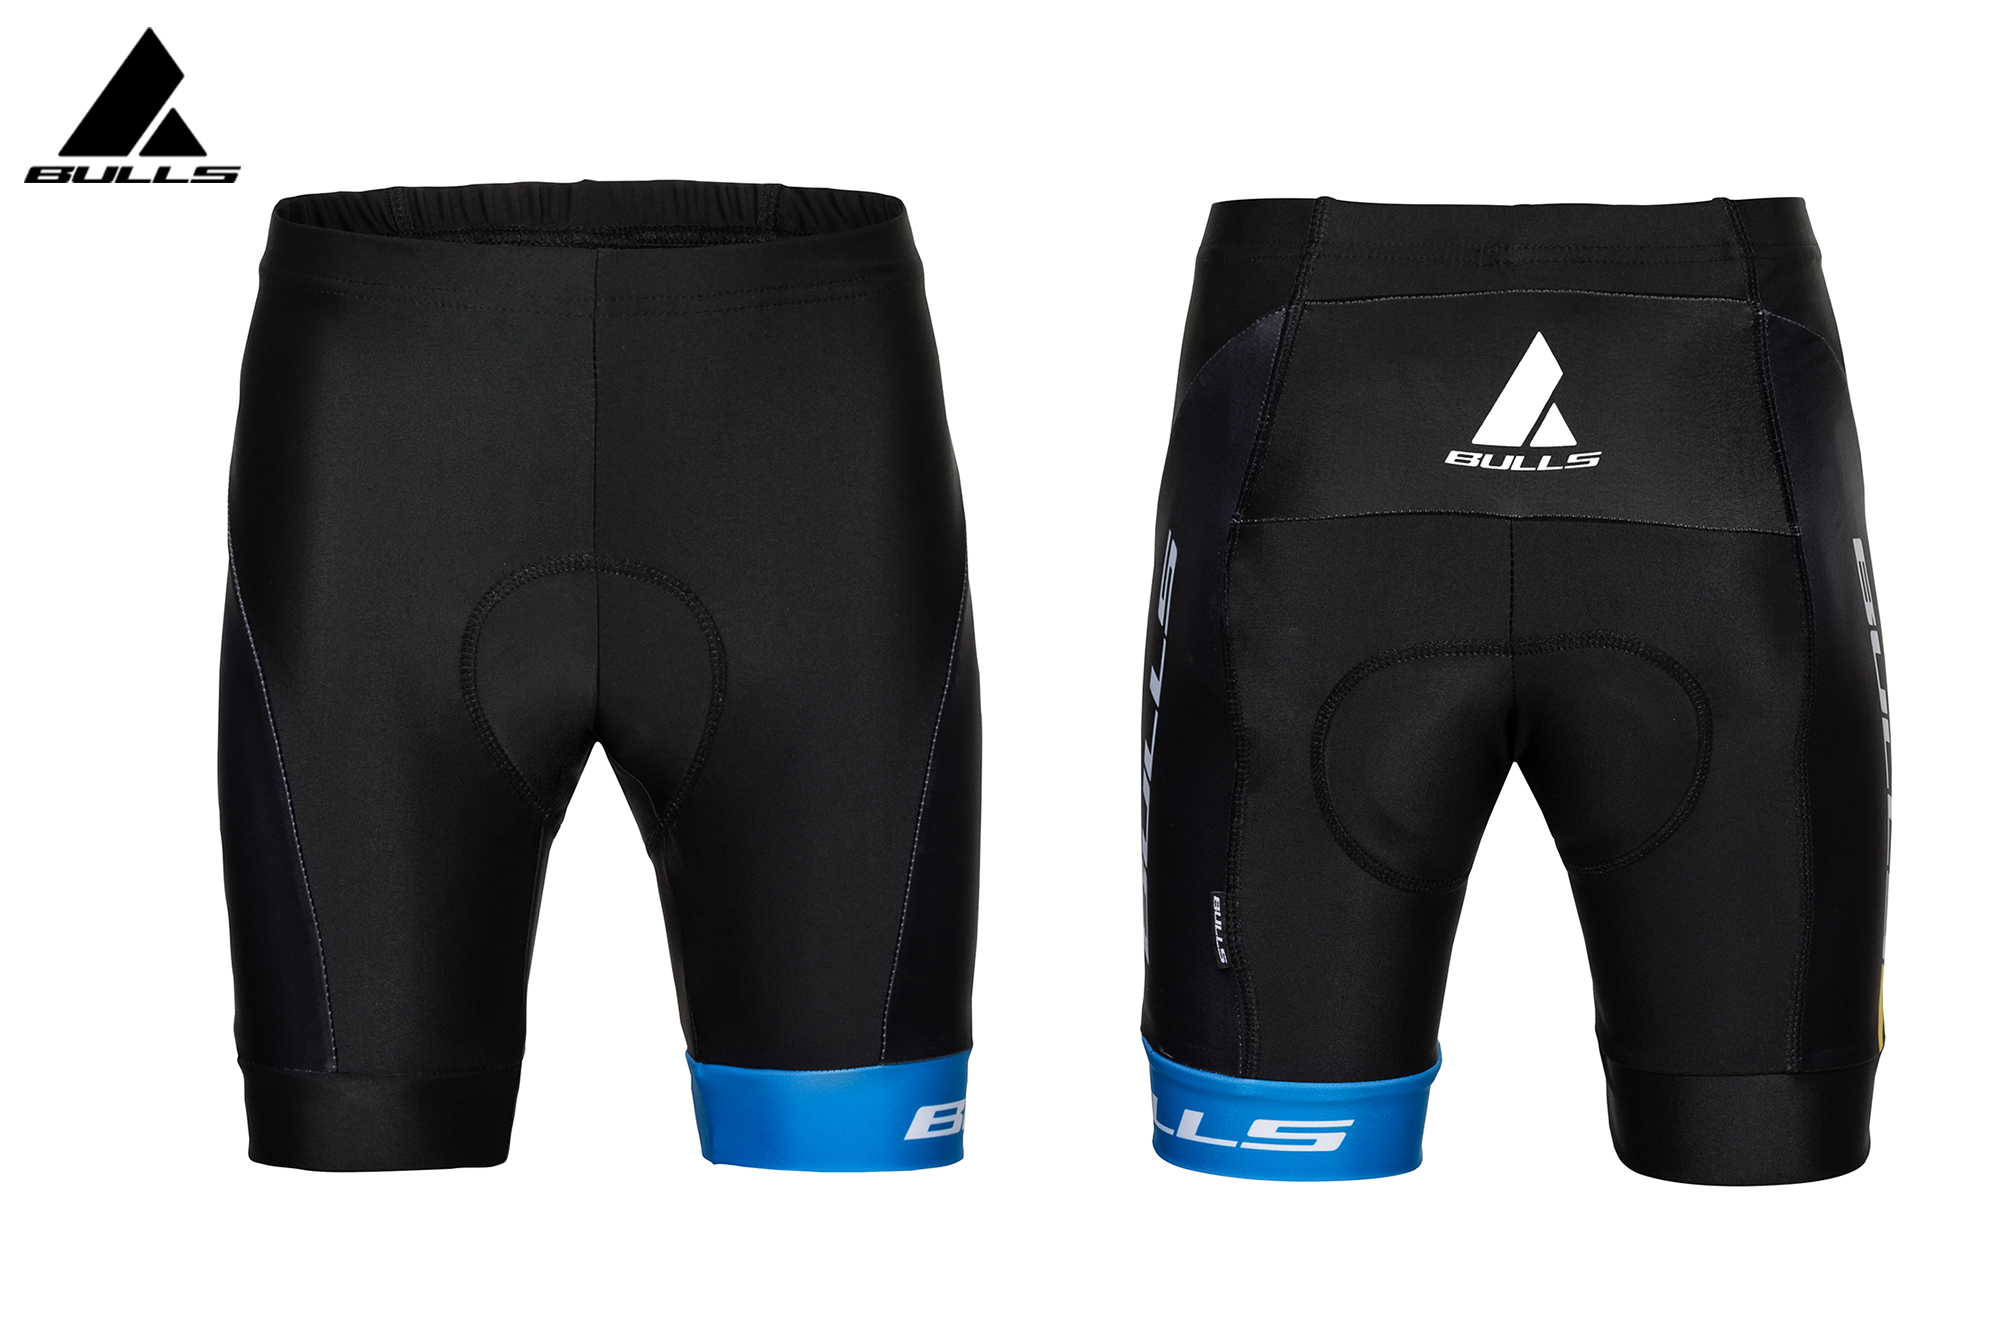 BULLS Kids Team Shorts - Radhose Kinder